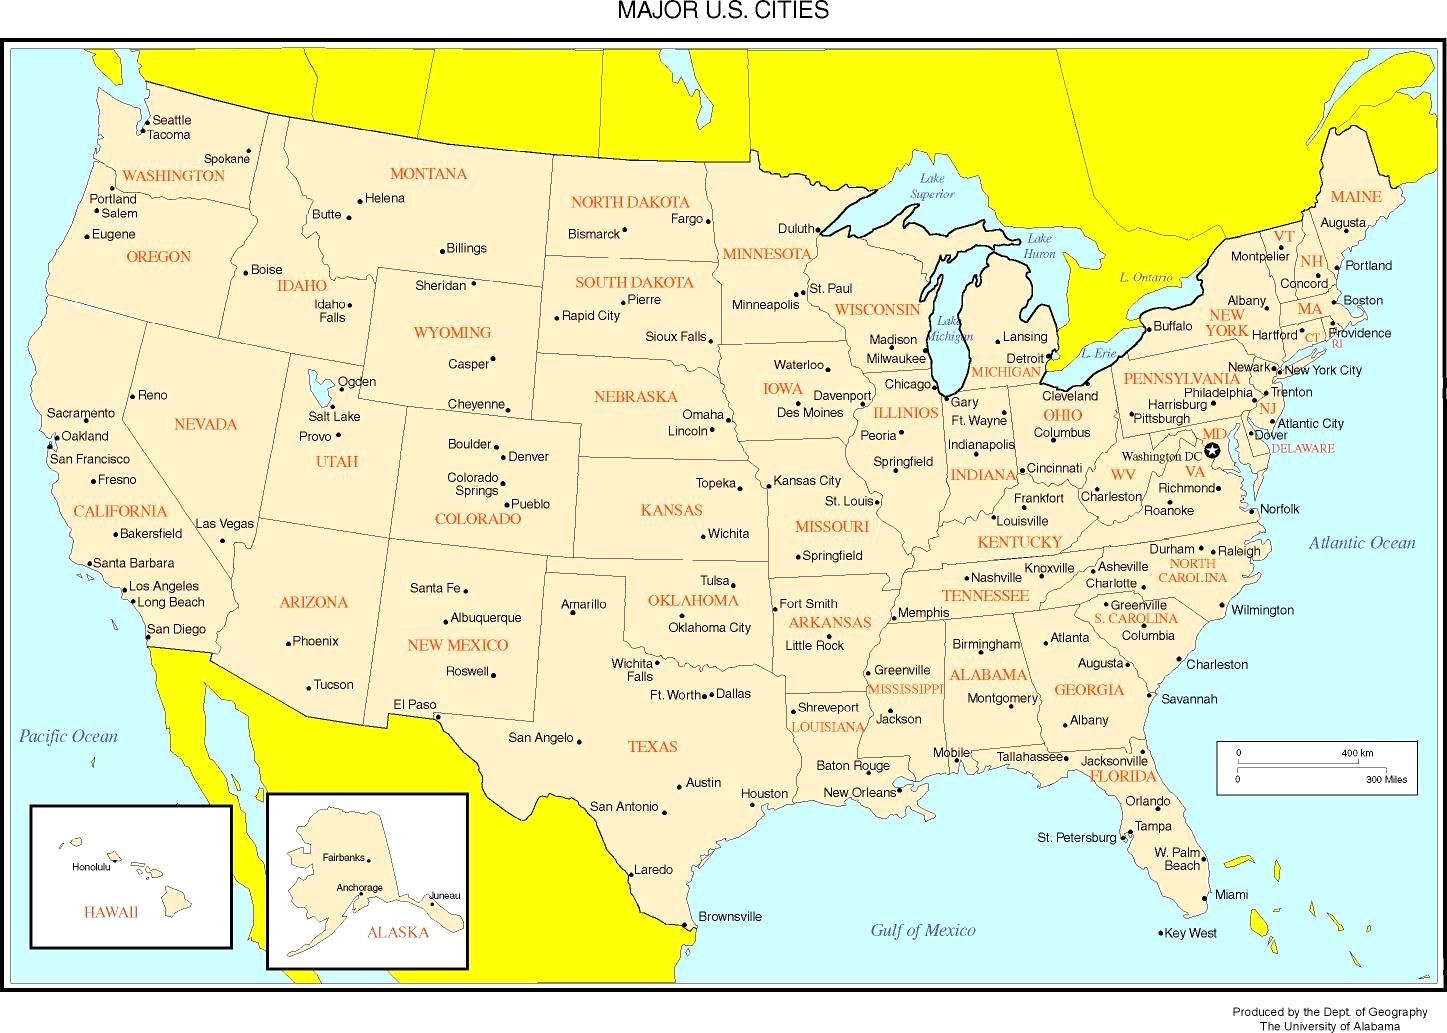 Map Of Usa Major Cities States Major Cities Map Of The USA | WhatsAnswer